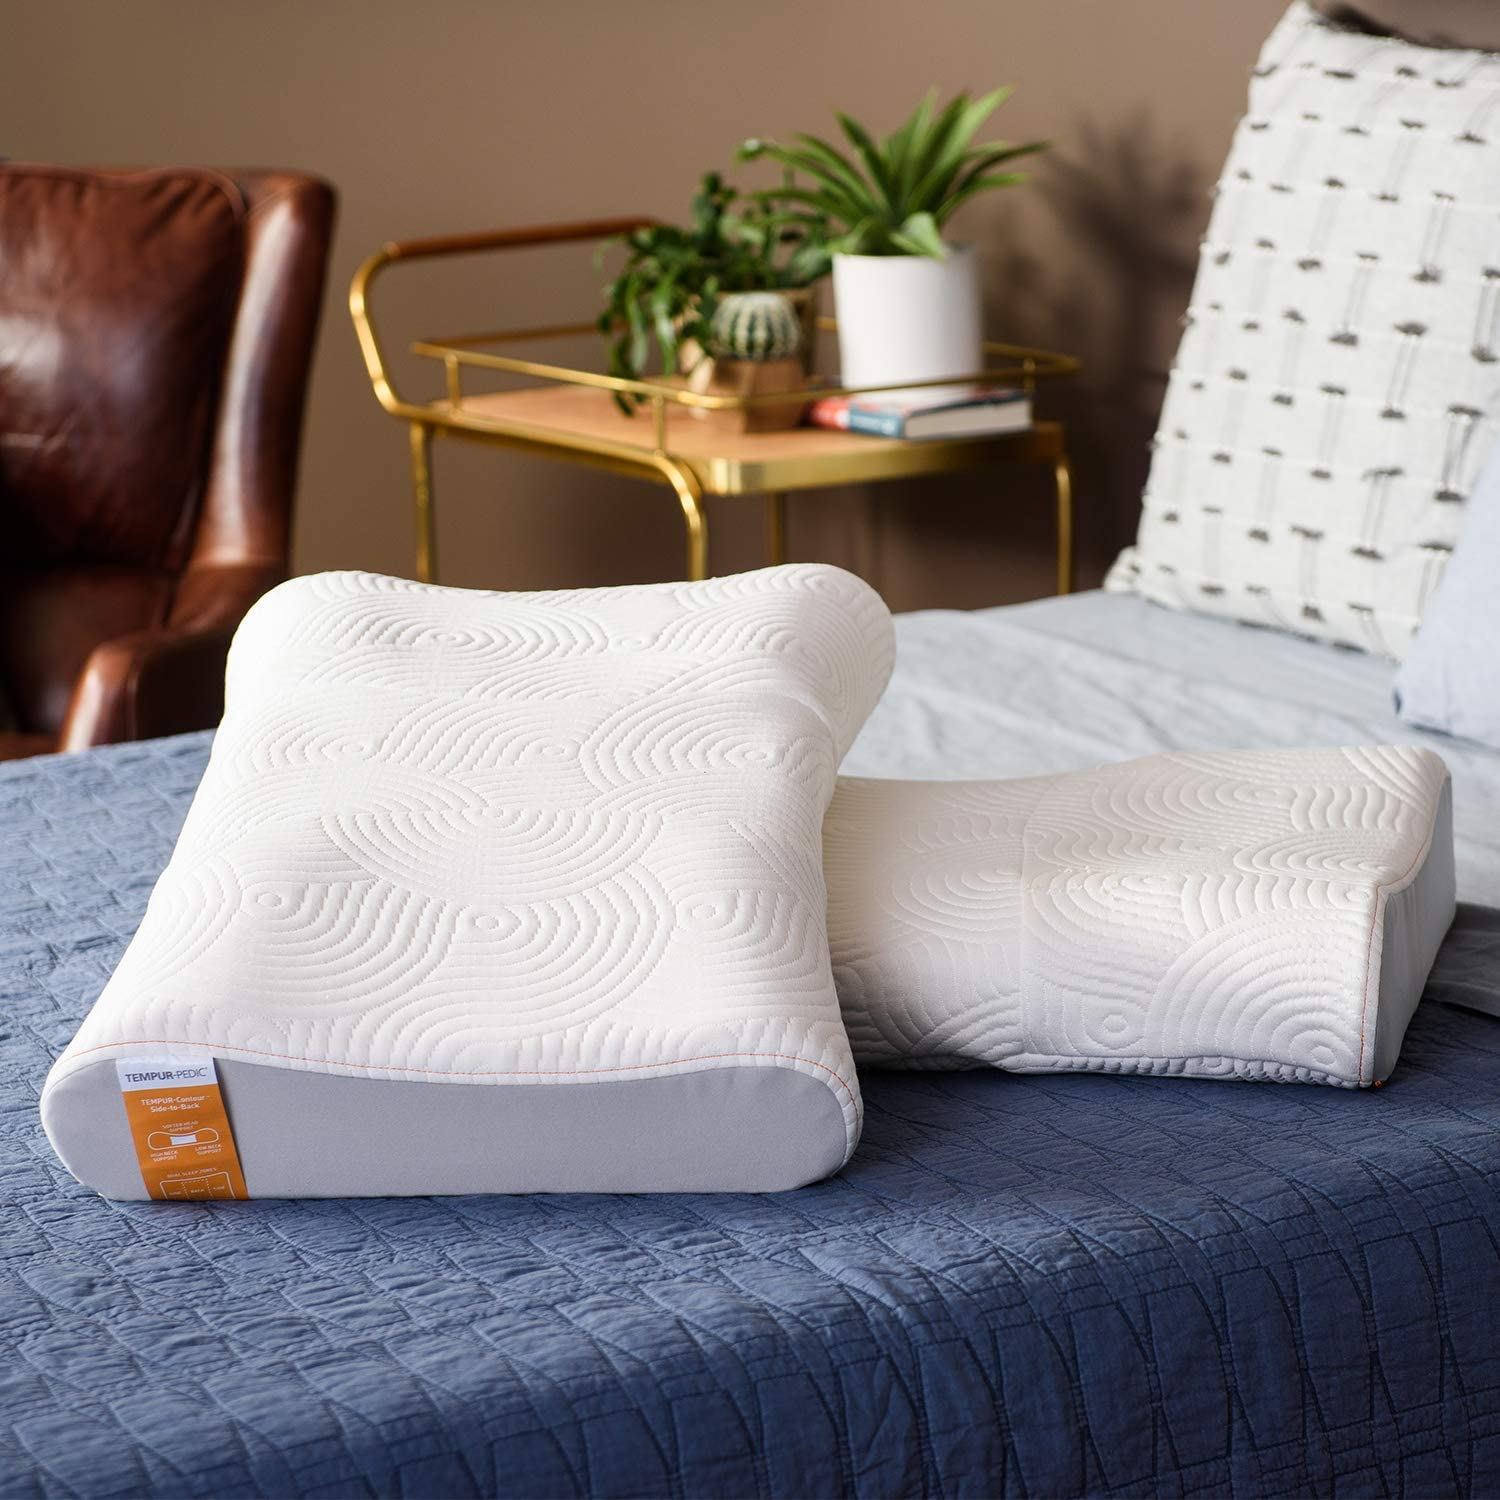 Easy Steps to Clean, Wash, & Sanitize a Tempurpedic PIllow or Mattress